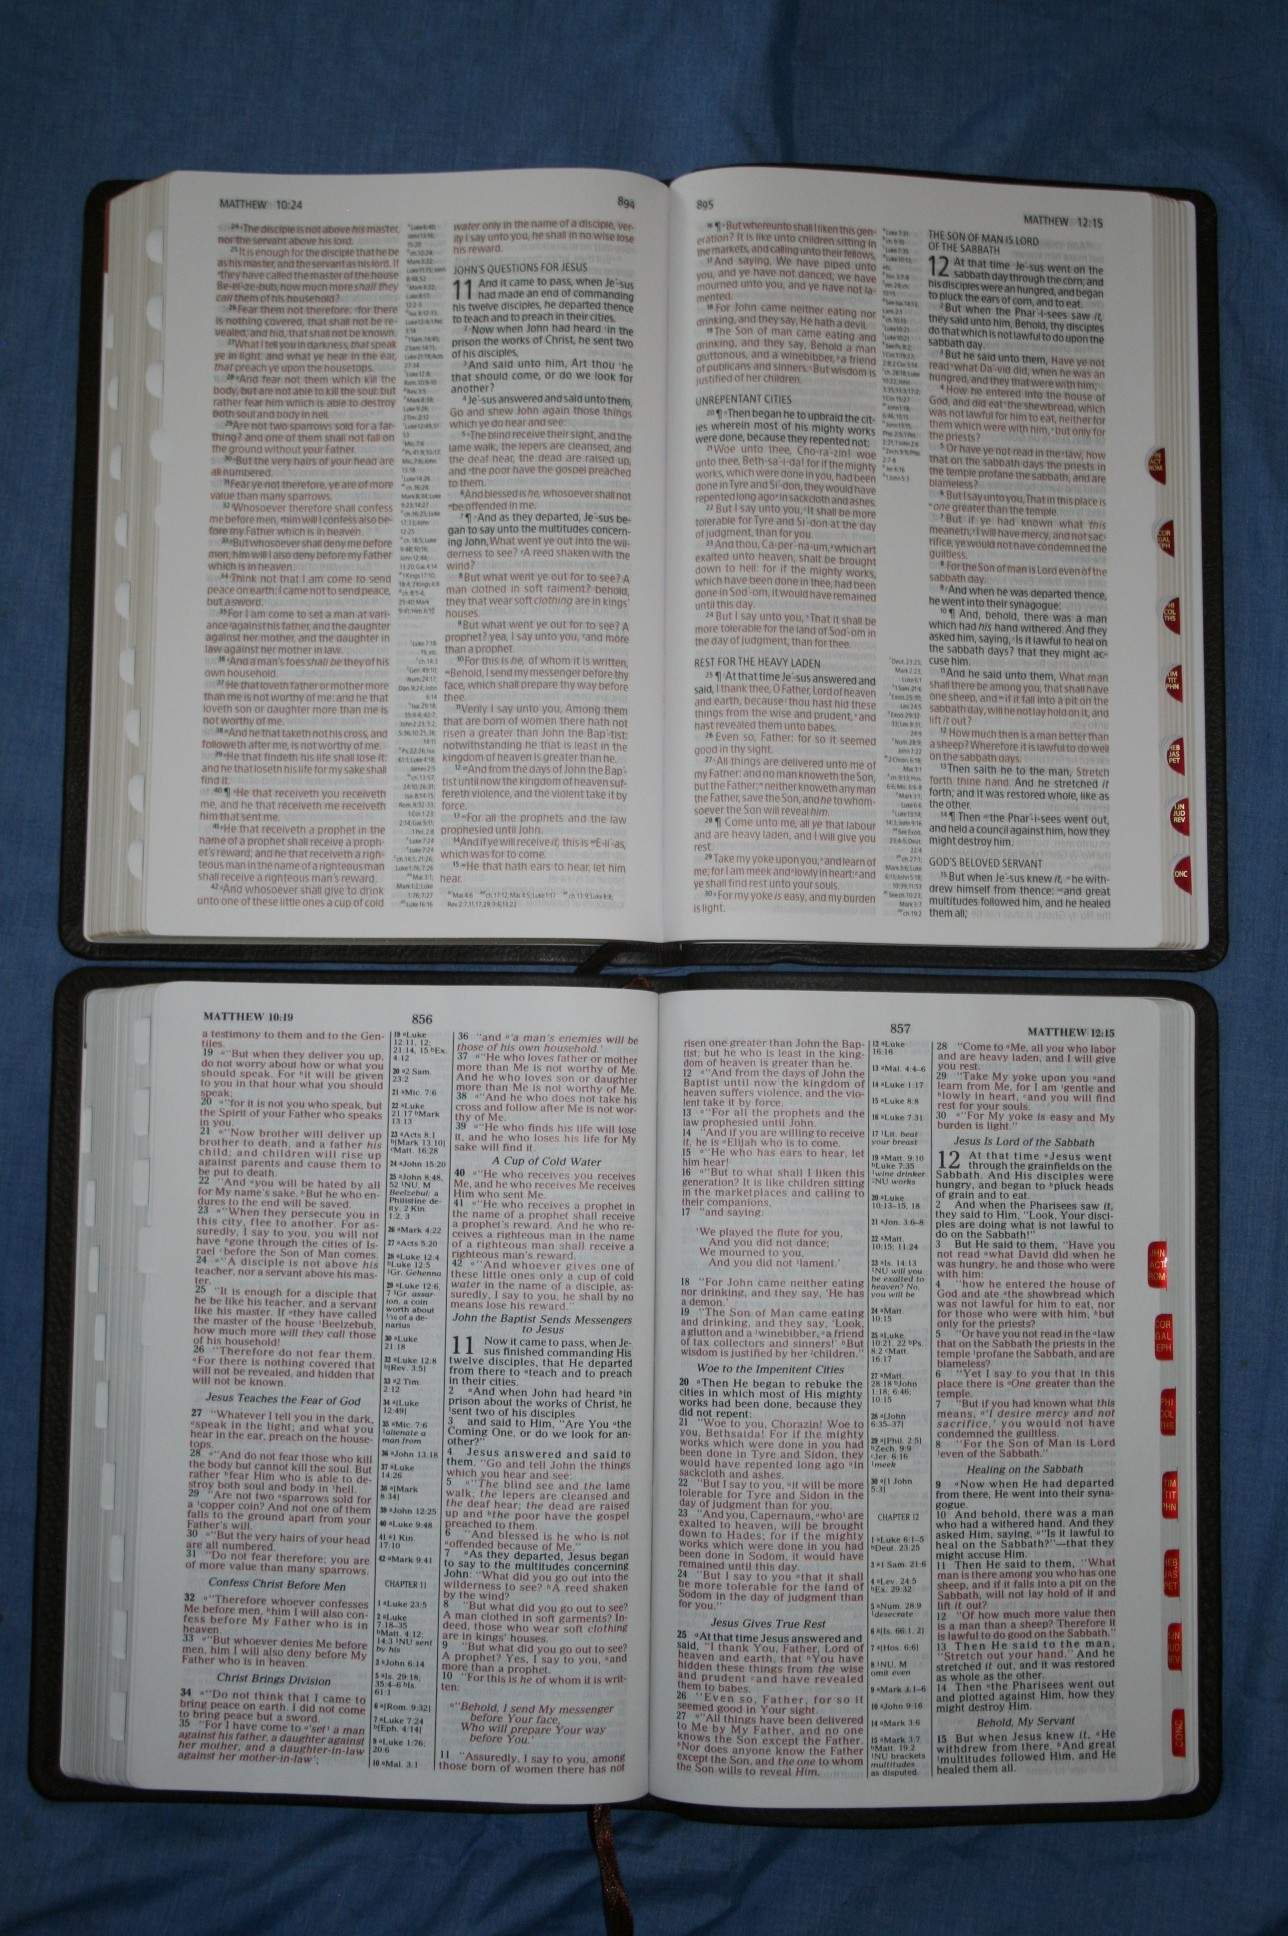 Holman NKJV Large Print Ultrathin Bible – Review